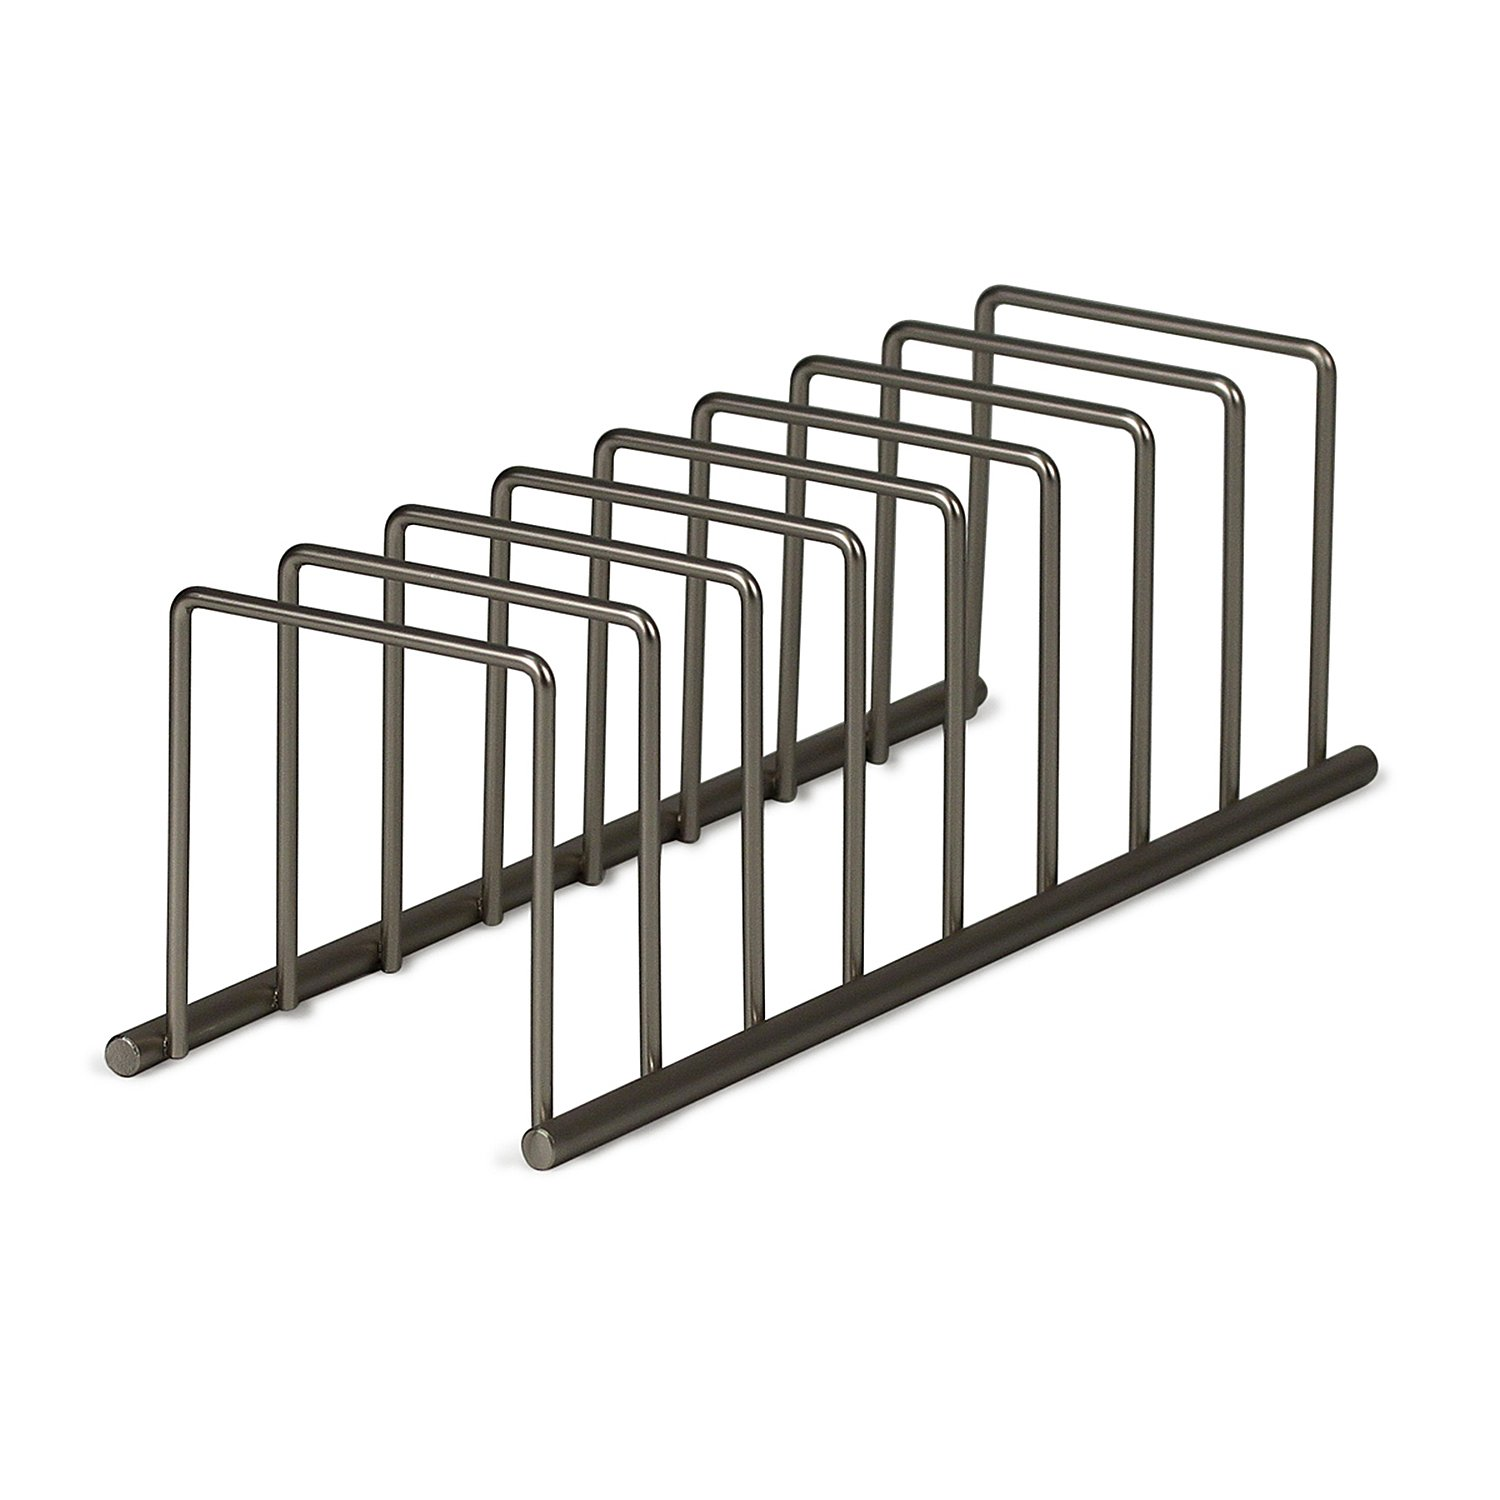 Amazon.com   Spectrum Diversified Euro Lid Organizer, Plate Rack, Lid  Holder, Square, Satin Nickel   Kitchen Storage And Organization Product Sets